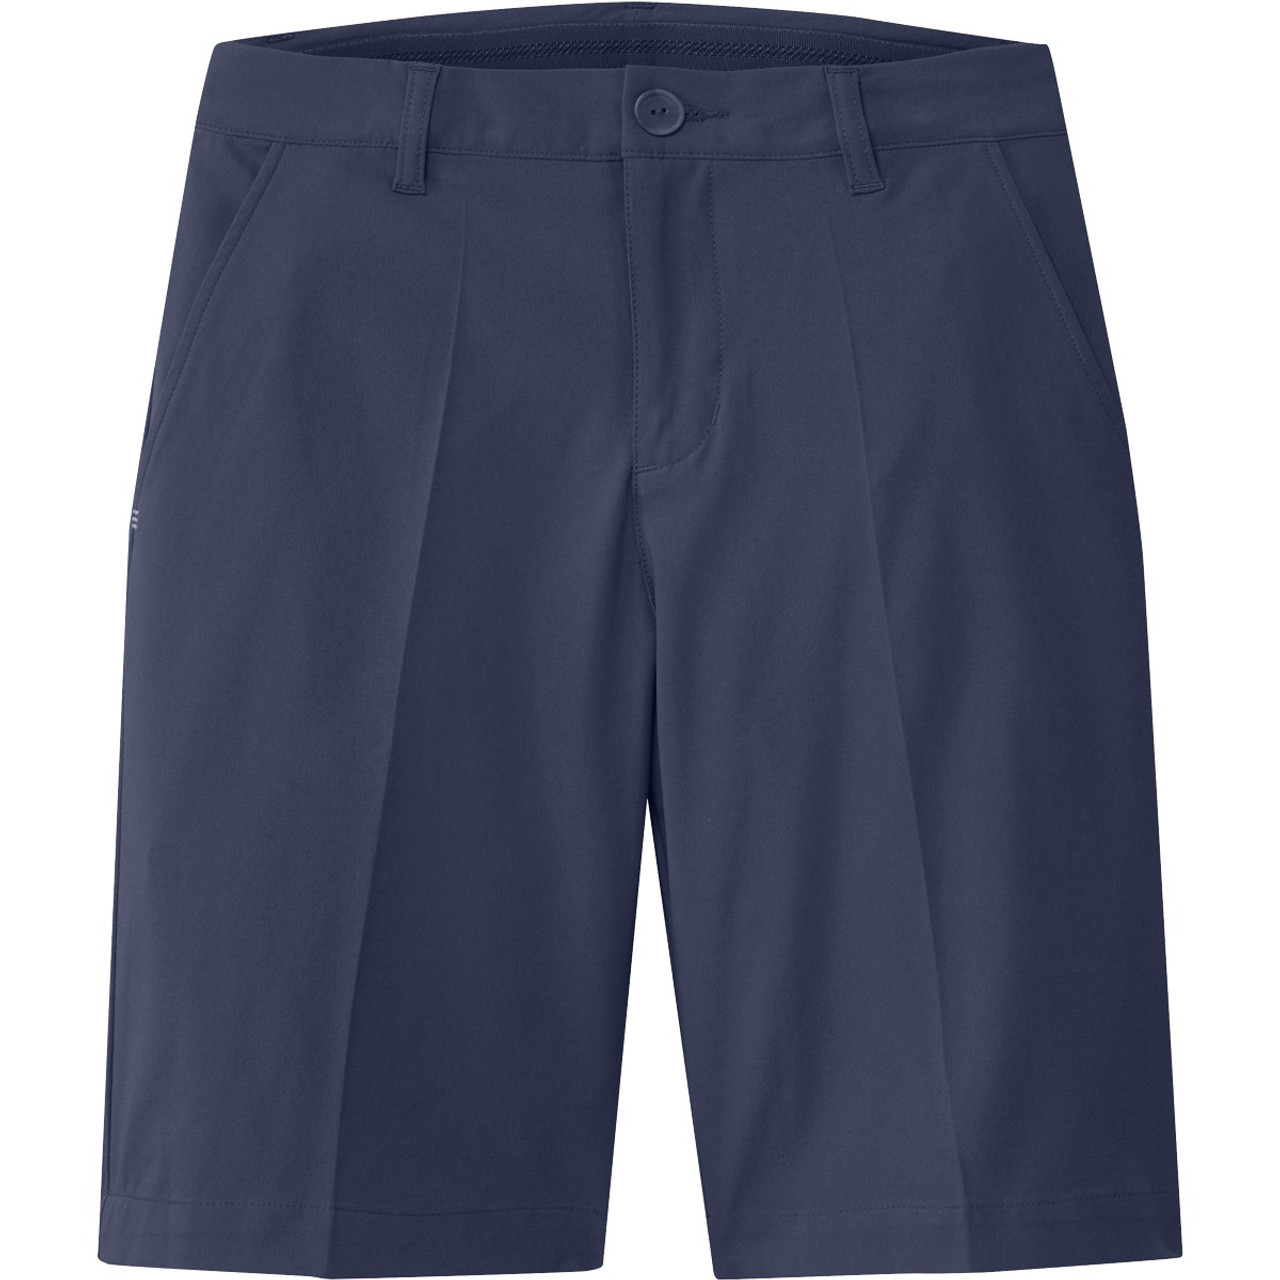 Adidas Boys Solid Shorts - Dark Blue